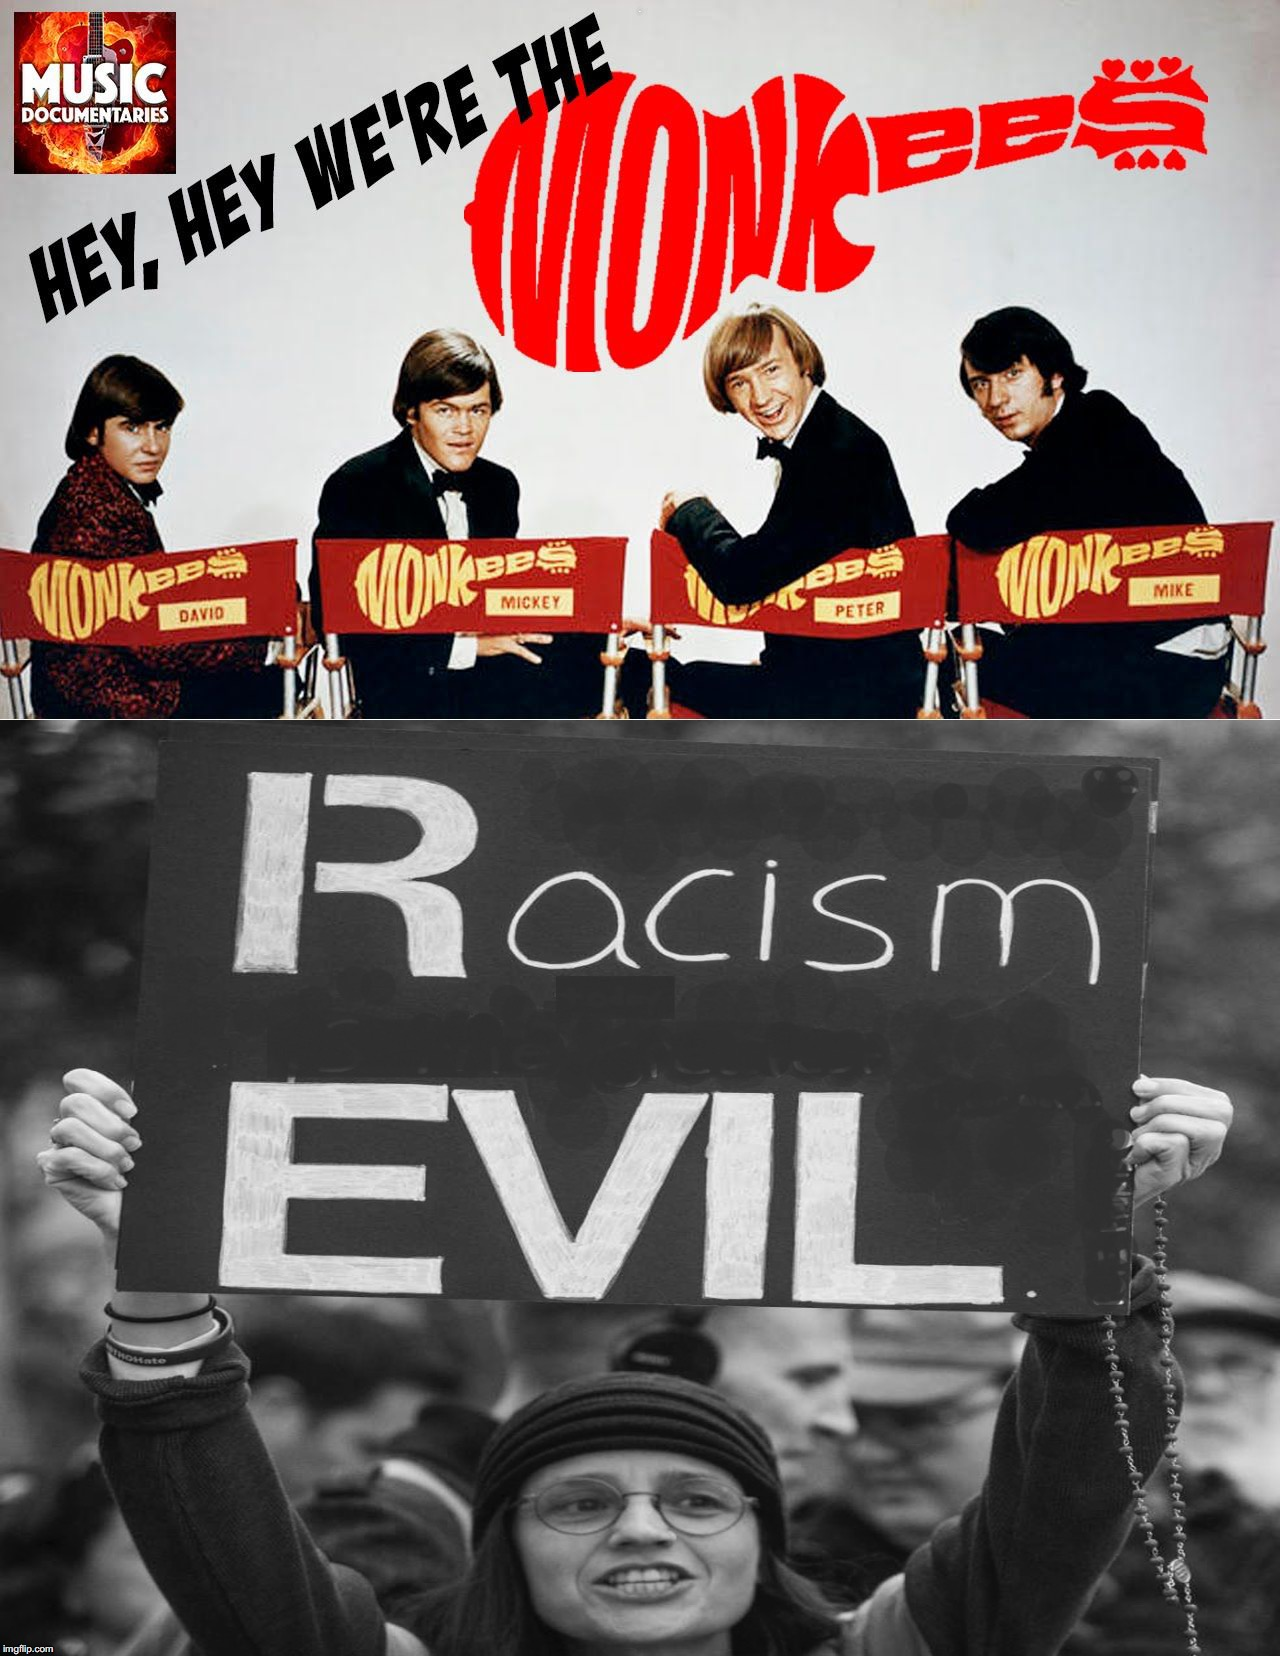 Go home Monkees! You're RACIST! |  N | image tagged in the monkees,racist,monkey | made w/ Imgflip meme maker